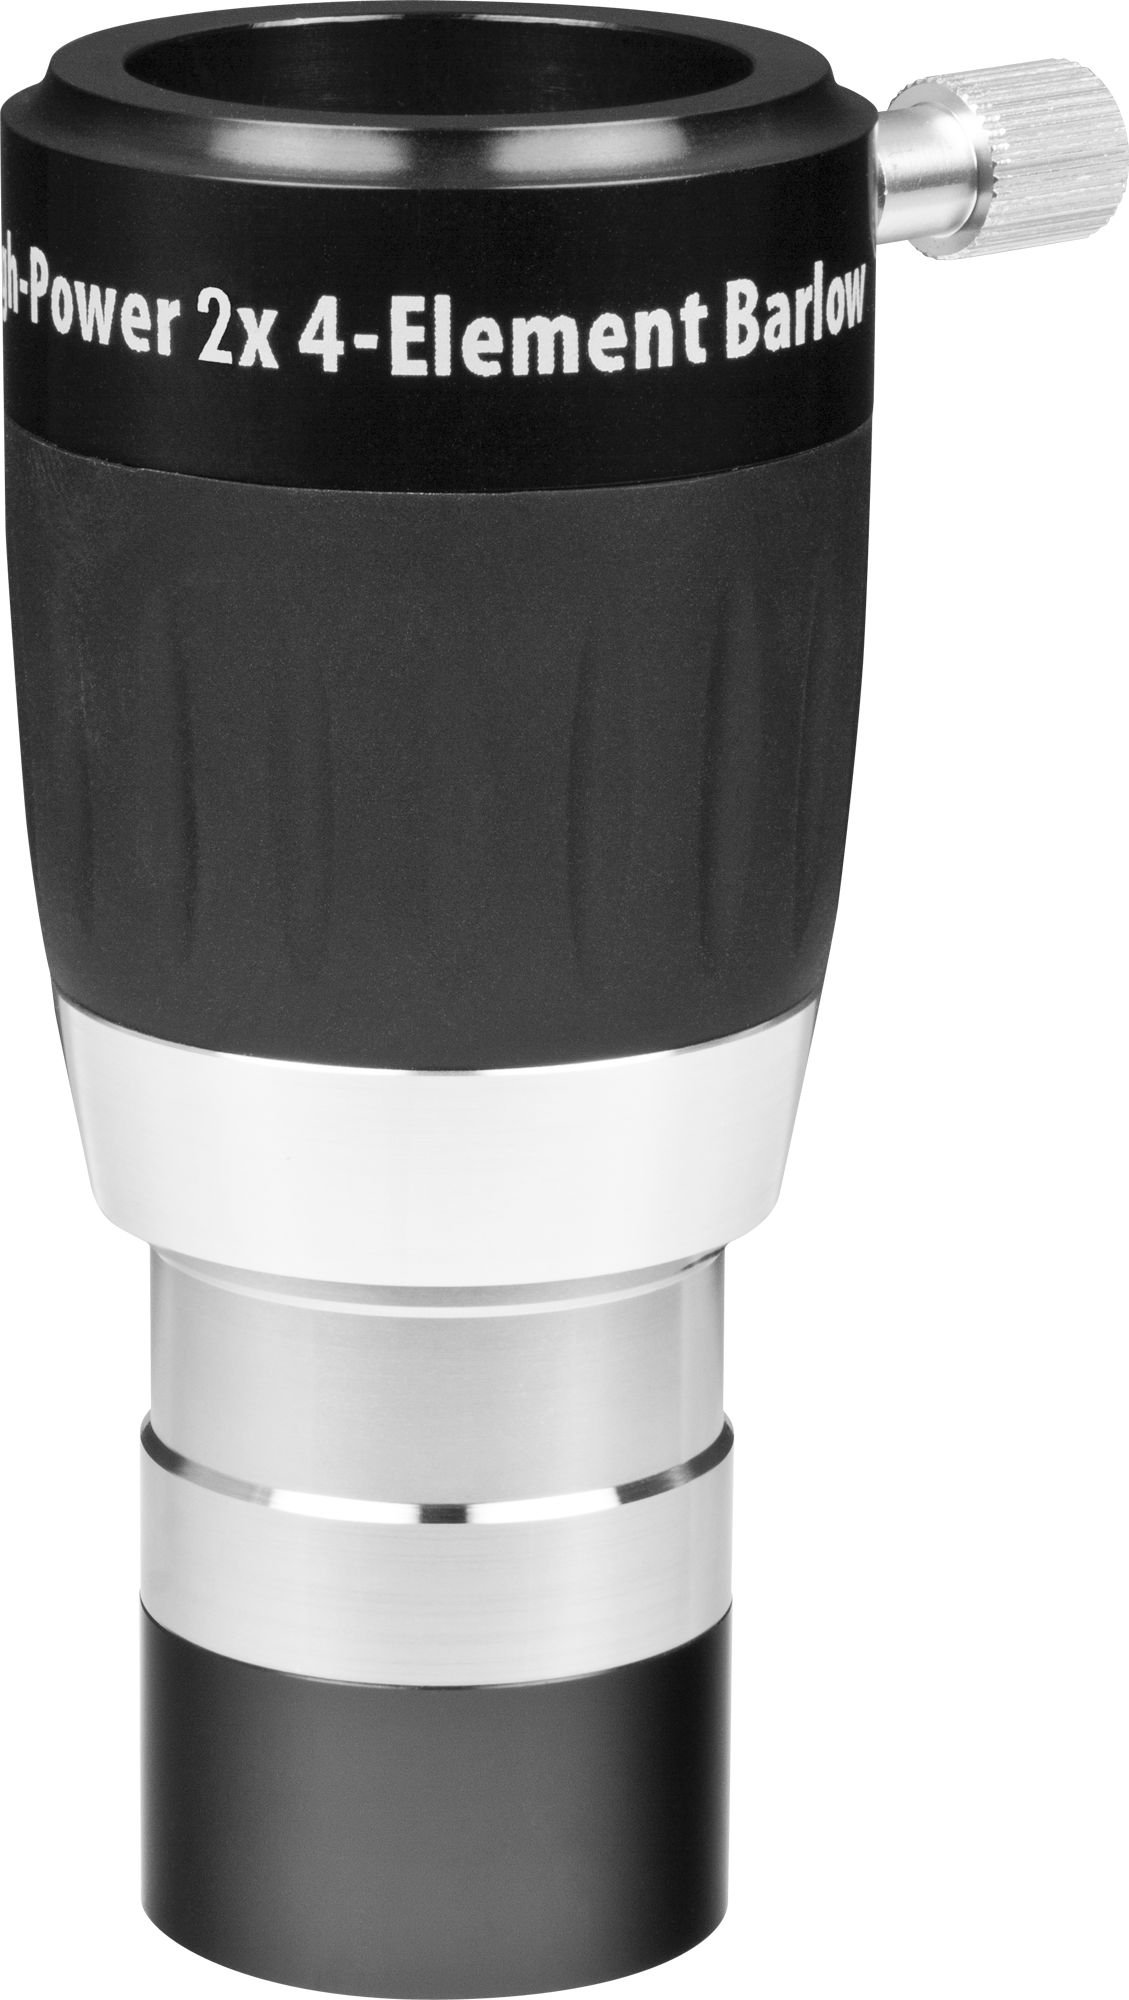 High-Power 1.25 Inch 2X 4-Element Barlow Lens by Orion